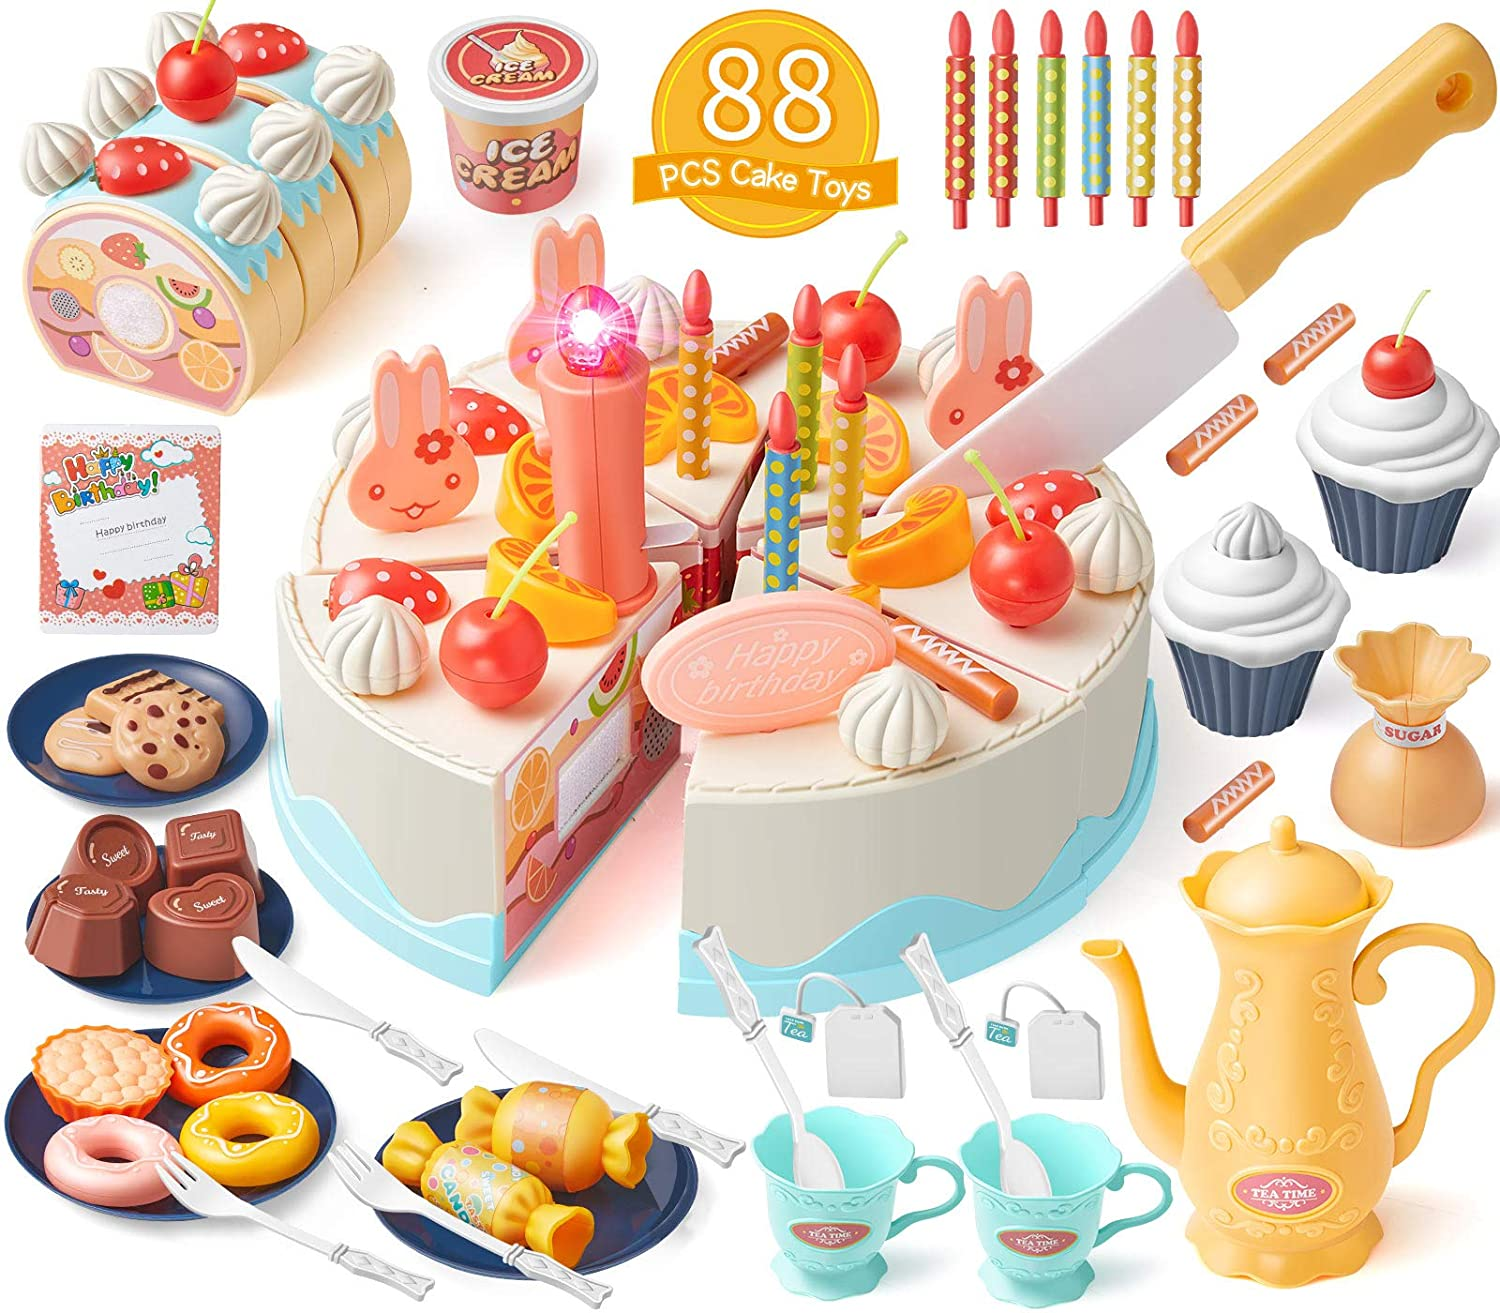 Geyiie Play Food Birthday Cake Tea Party Dessert Set with Light,88 PCS Pretend Play Cutting Food with Chocolate,Fruit Decor,Candles and More,Gift Choice for Toddlers Boys Girls